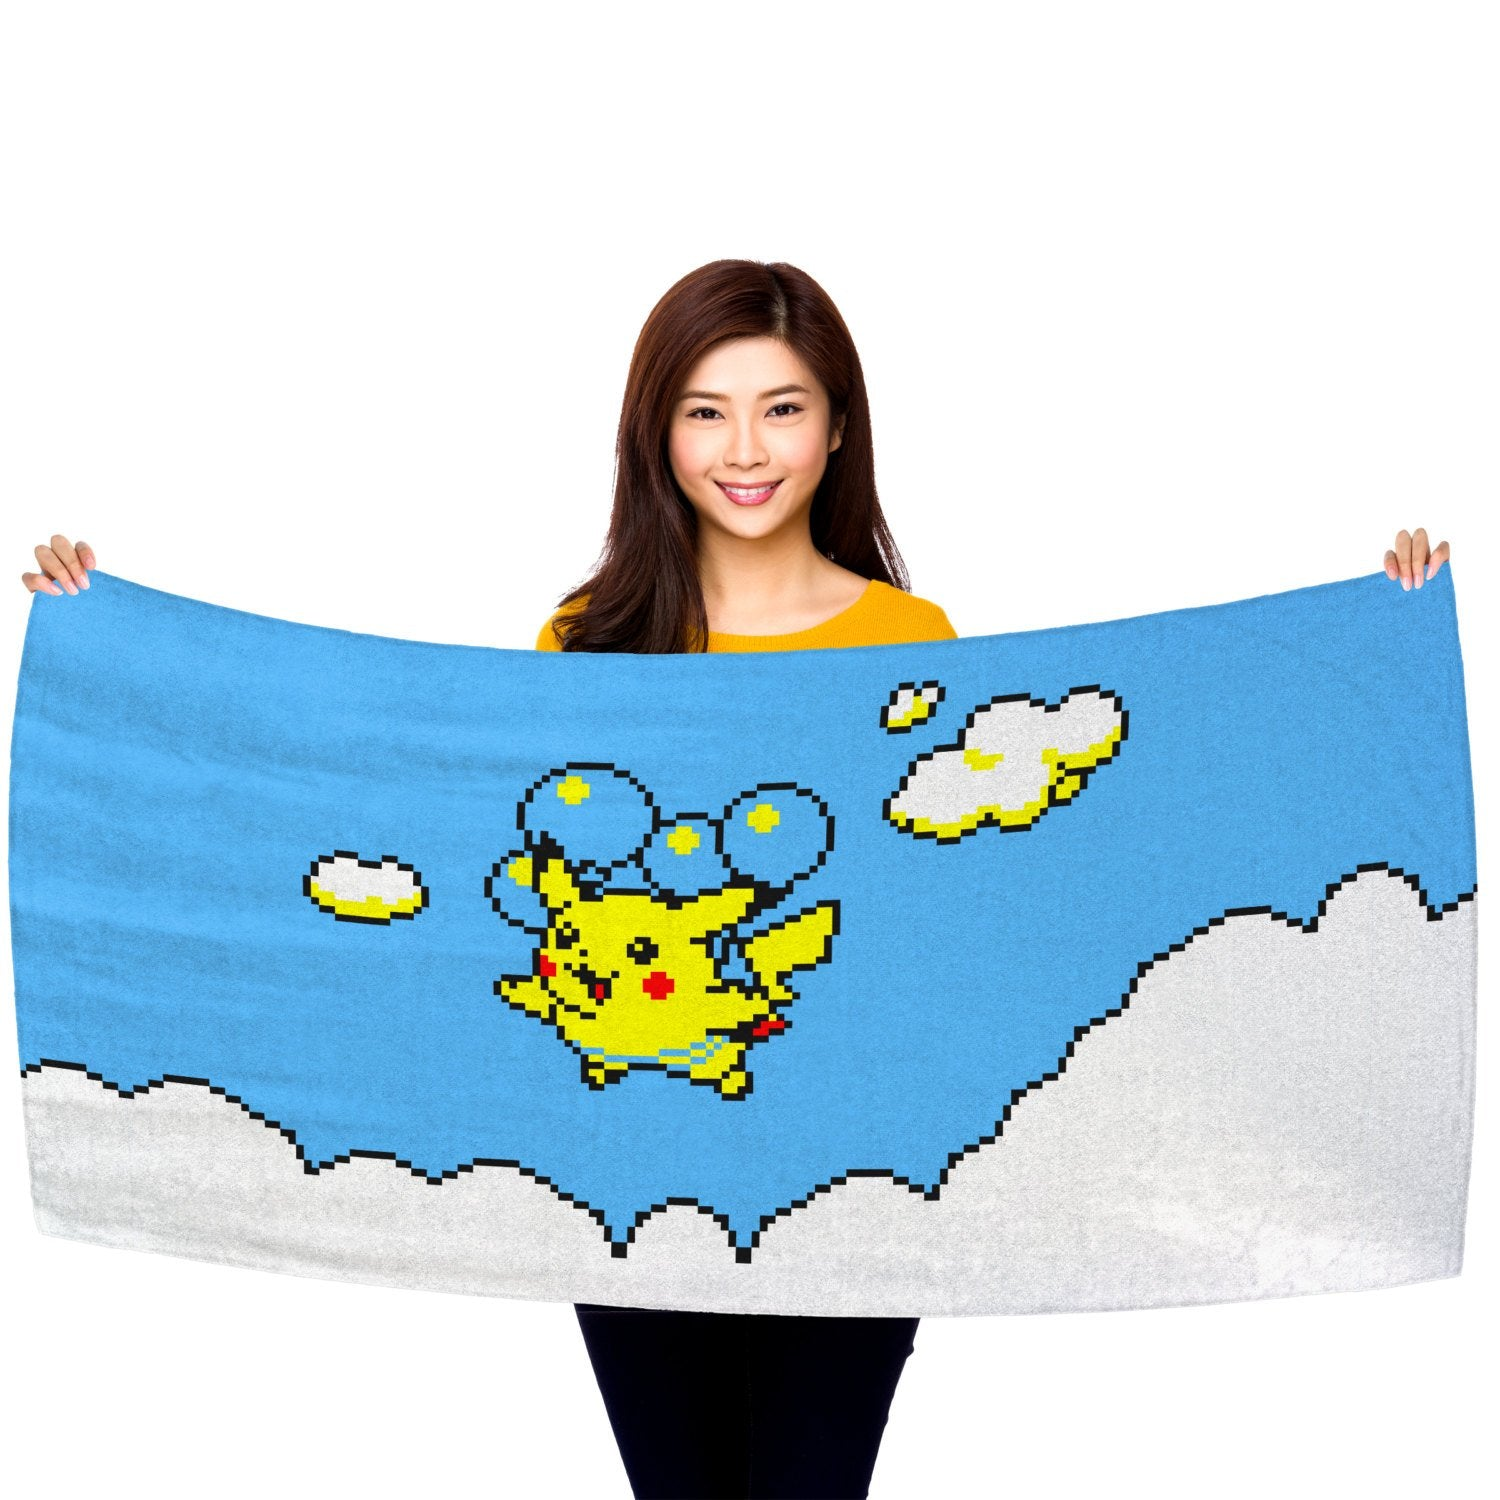 "Pokemon Yellow, Flying Pikachu 30"" x 60"" Microfiber Beach Towel"